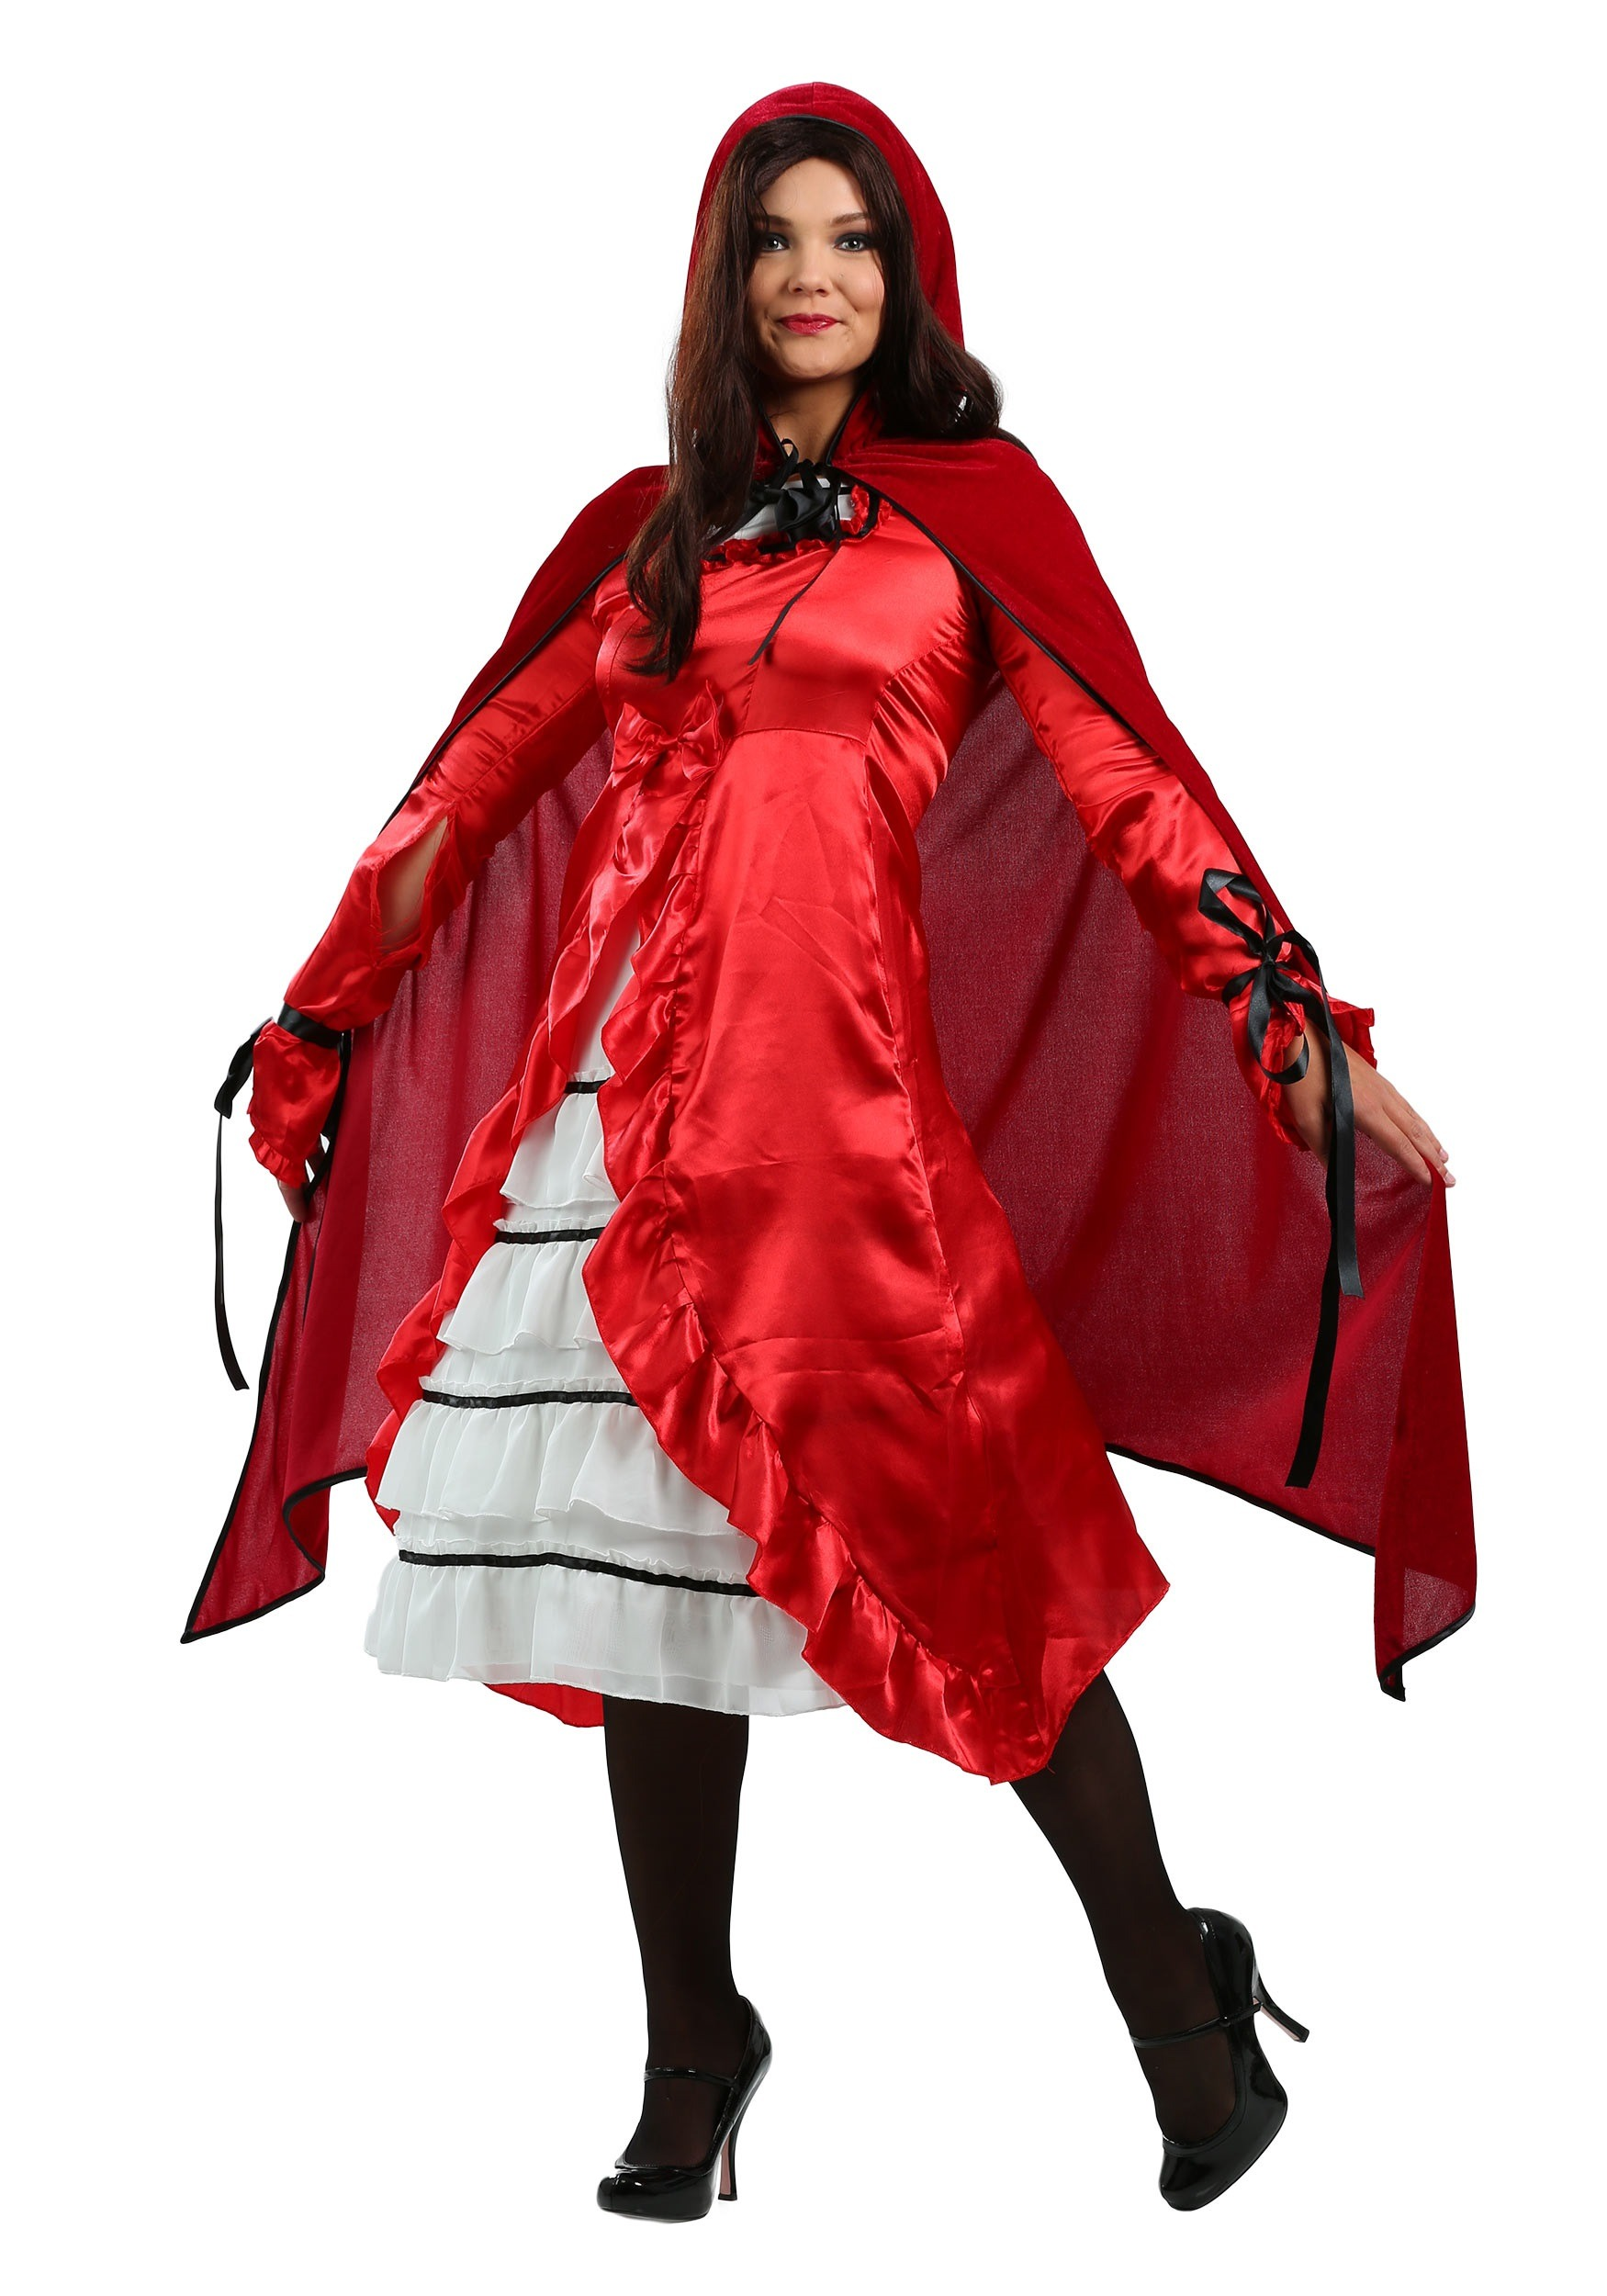 Womens Fairytale Red Riding Hood Costume